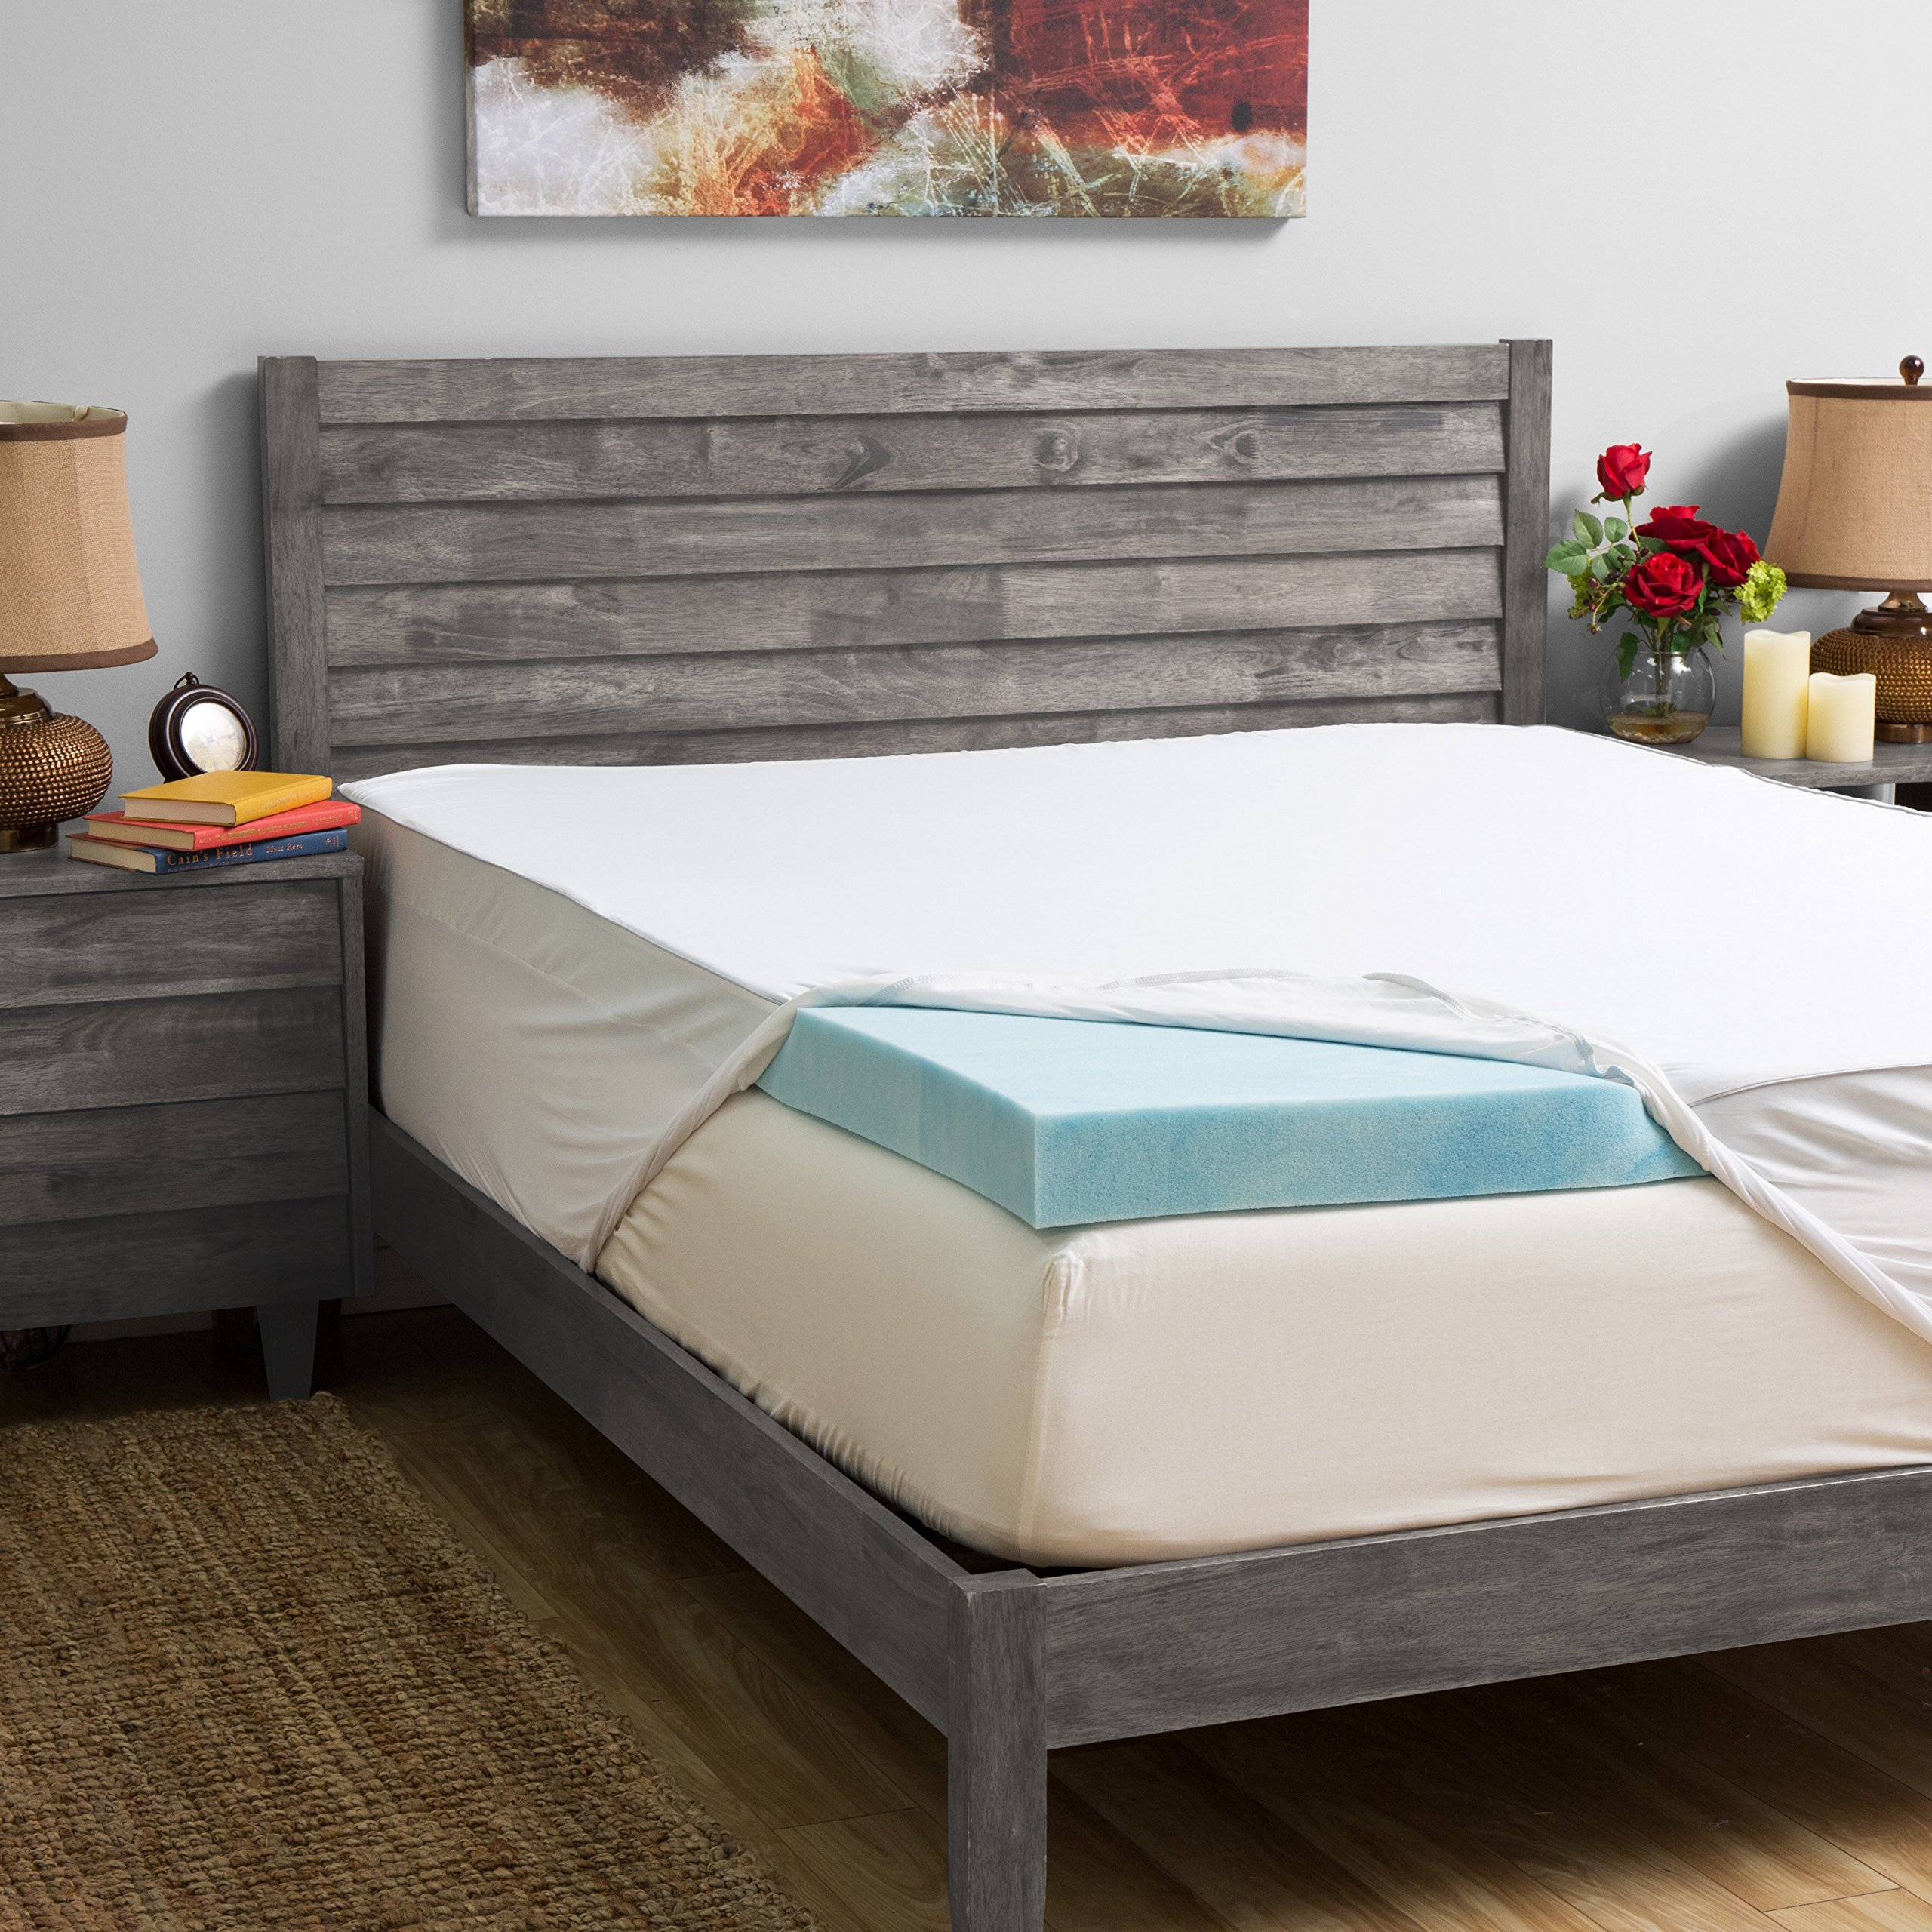 Grande Hotel Collection 3-inch Gel Memory Foam Mattress Topper with 300 Thread Count Egyptian Cotton Cover Queen